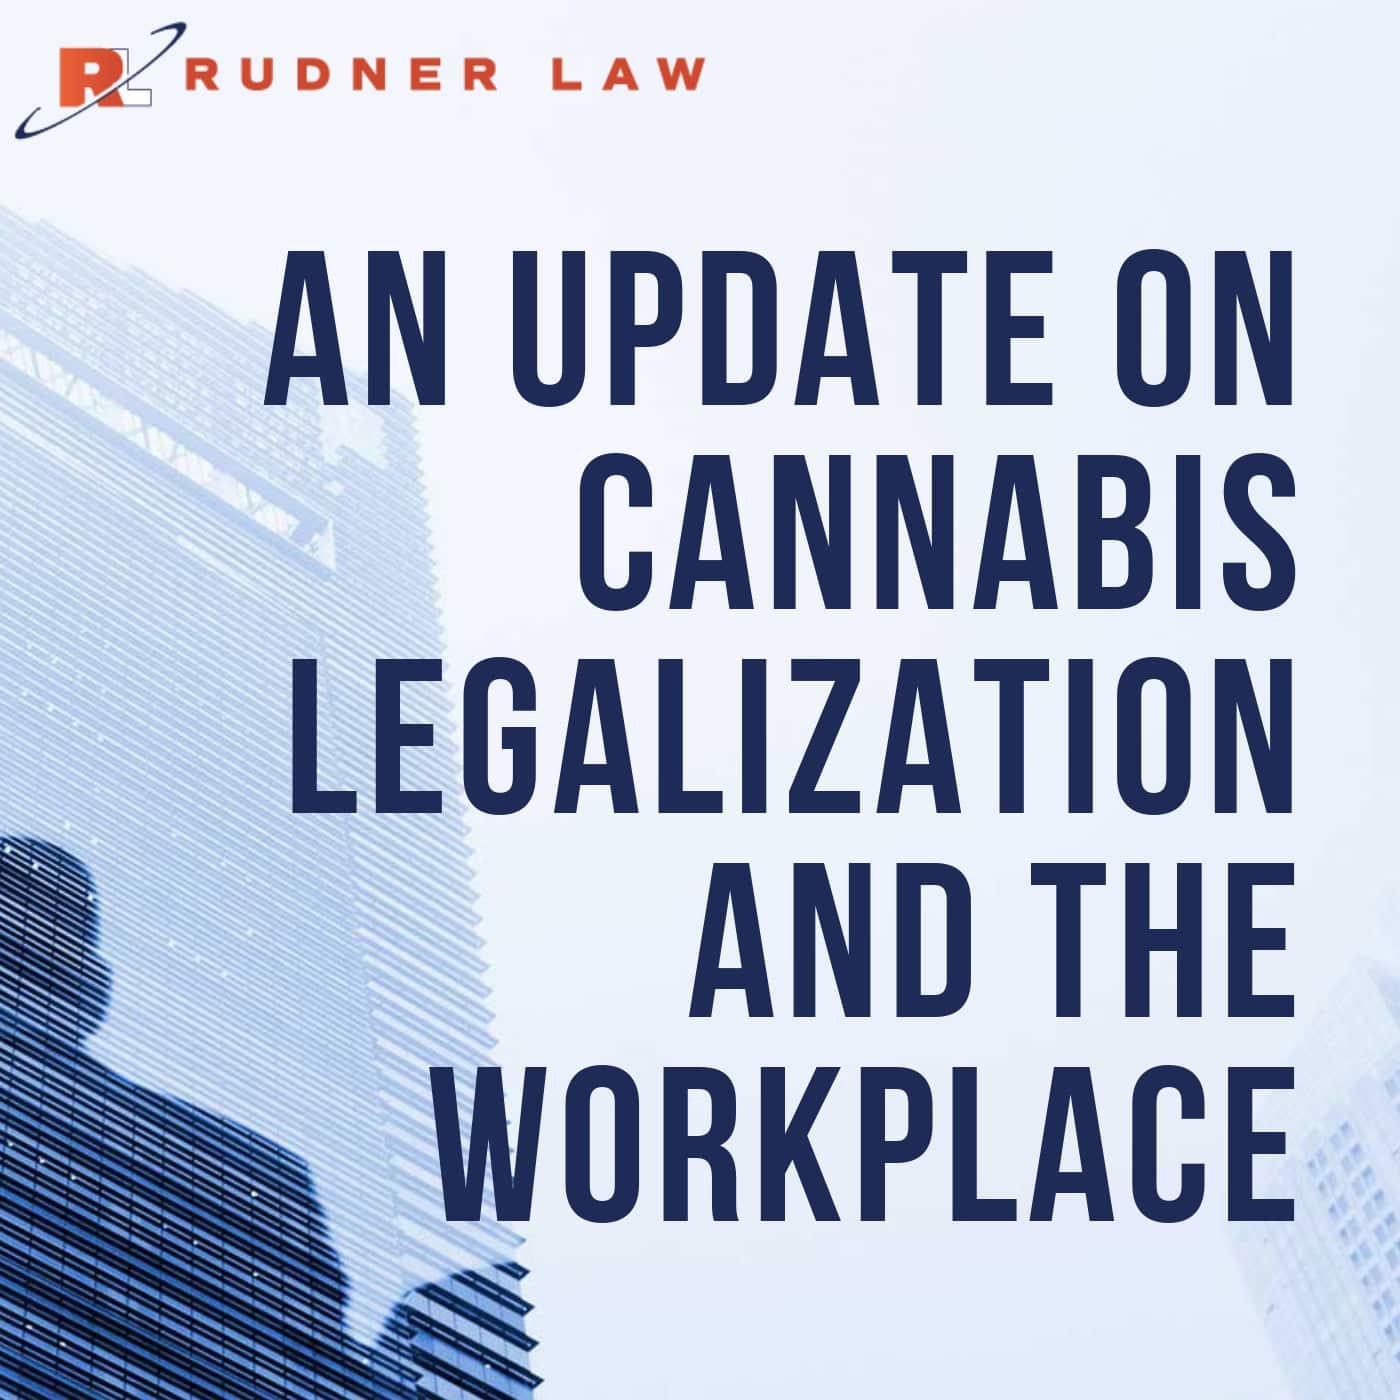 Audio: Fire Away - An Update on Cannabis Legalization and the Workplace